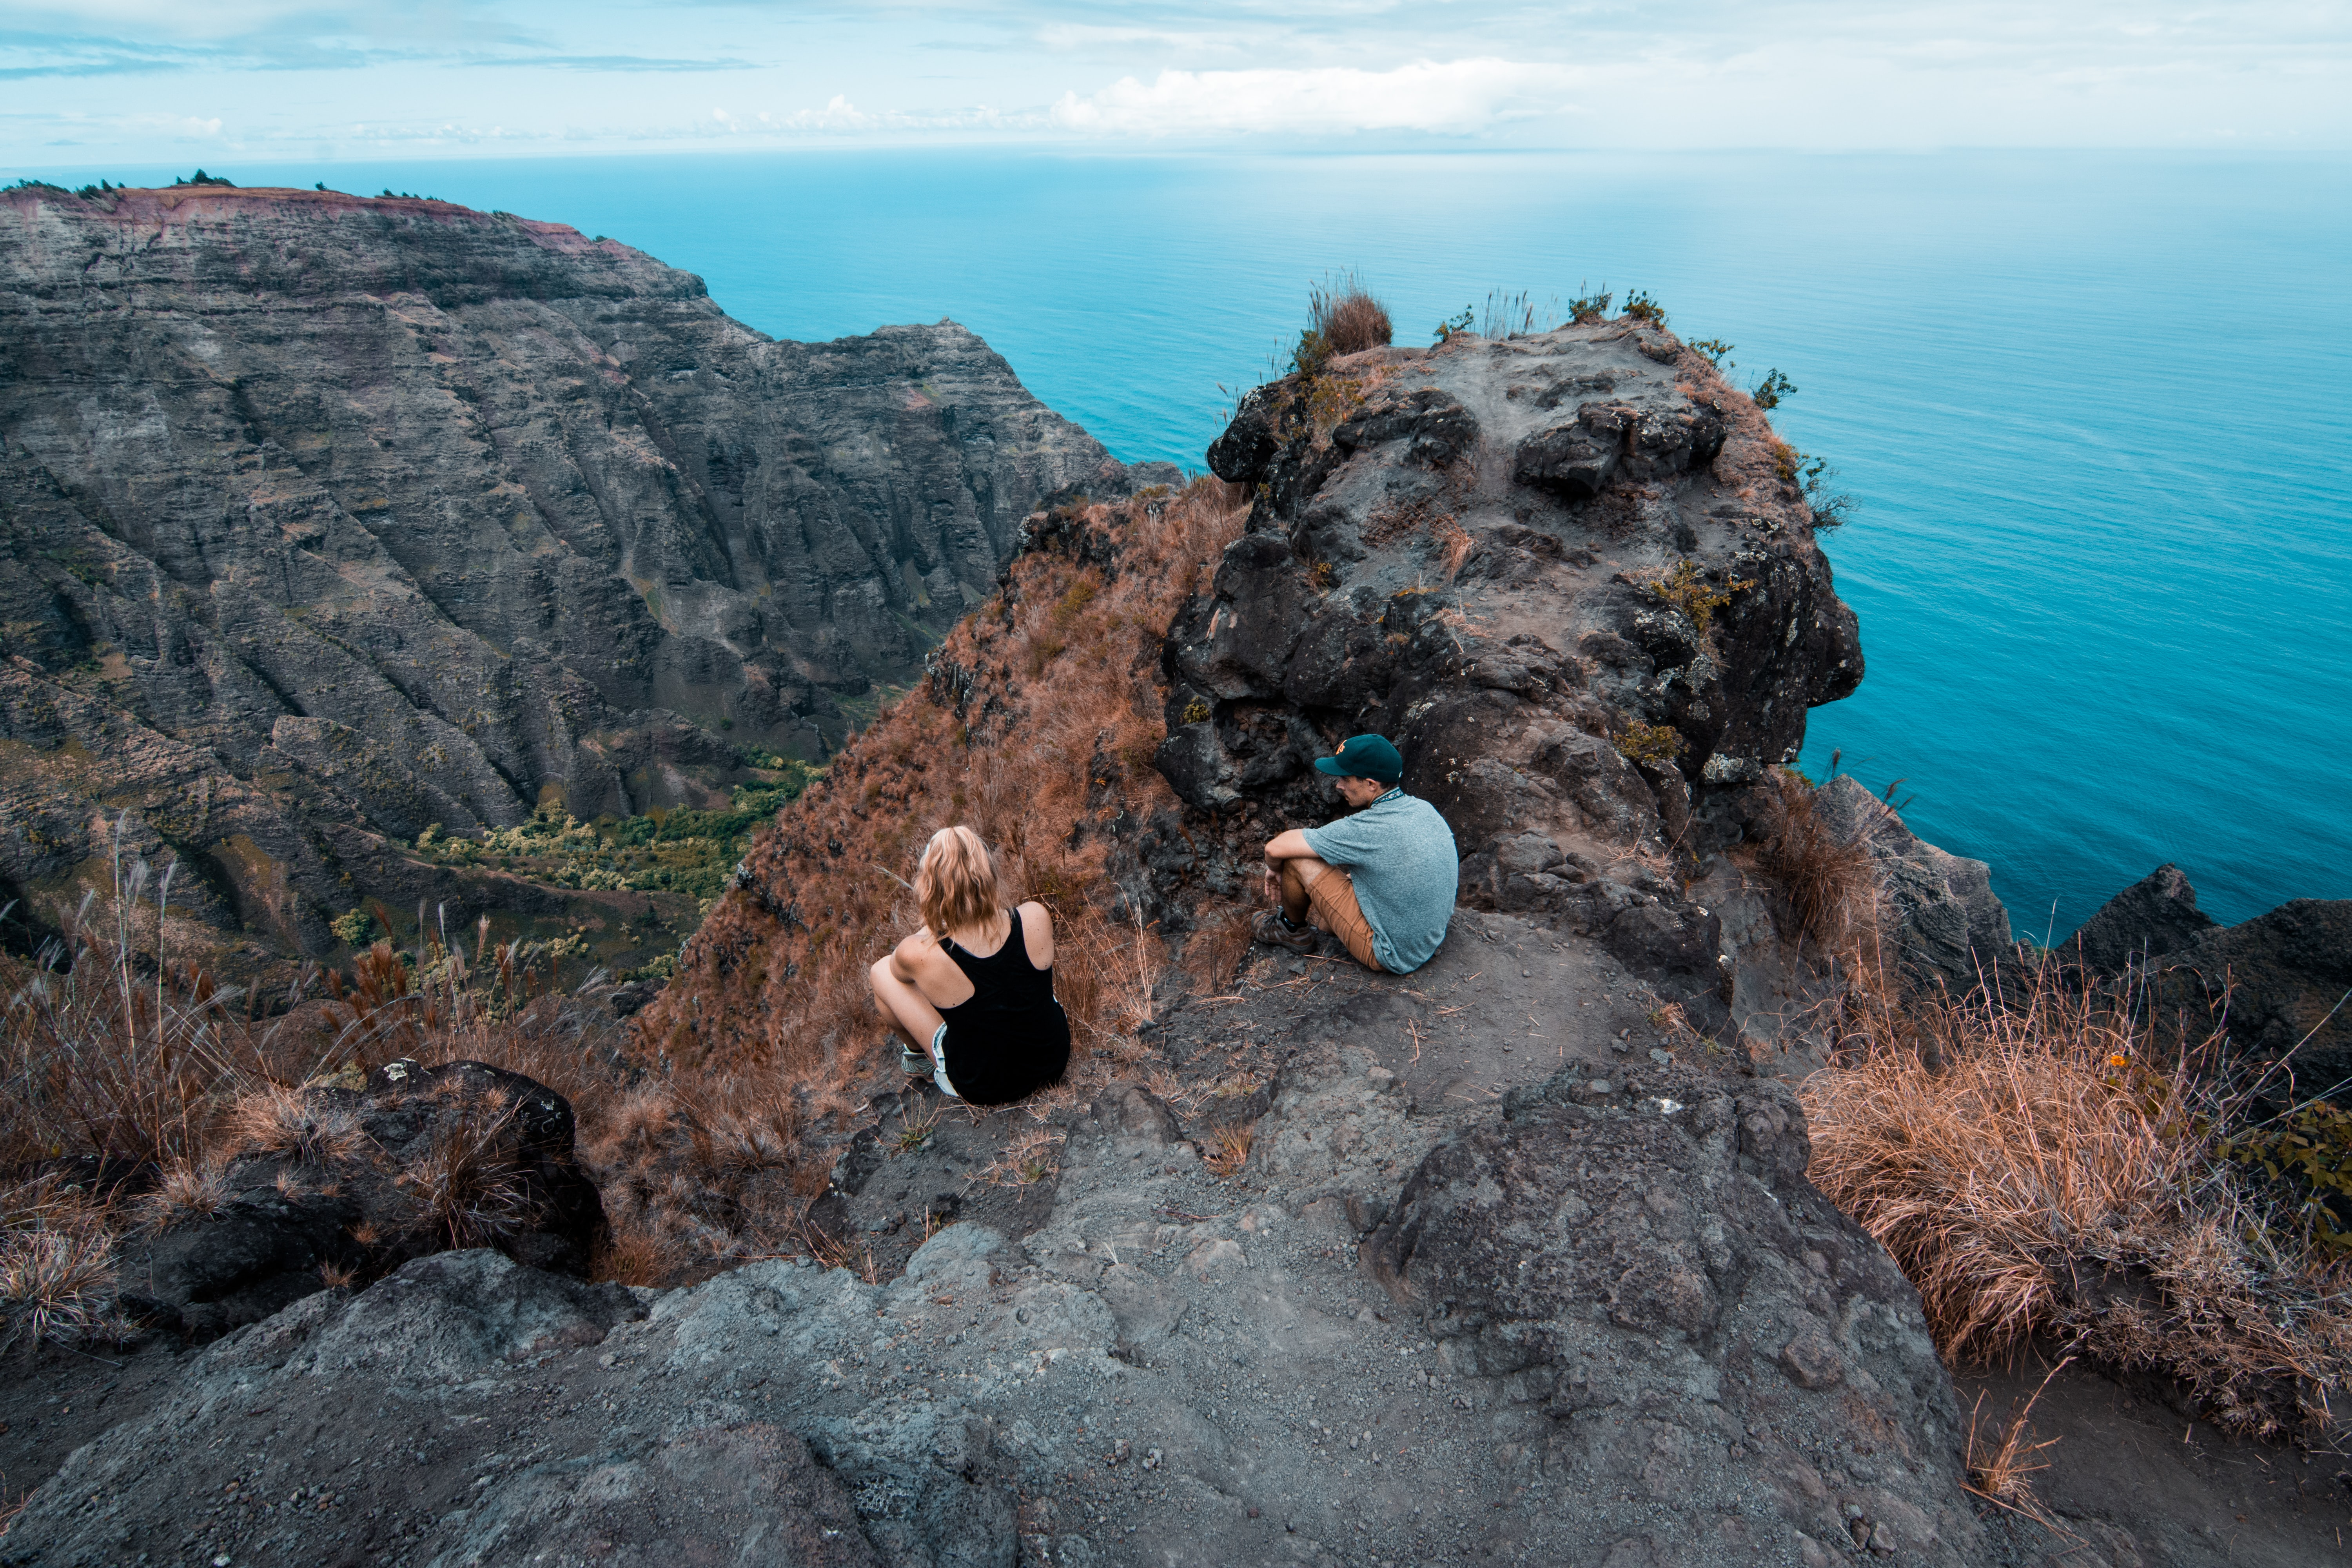 man and woman seating on mountain during day time